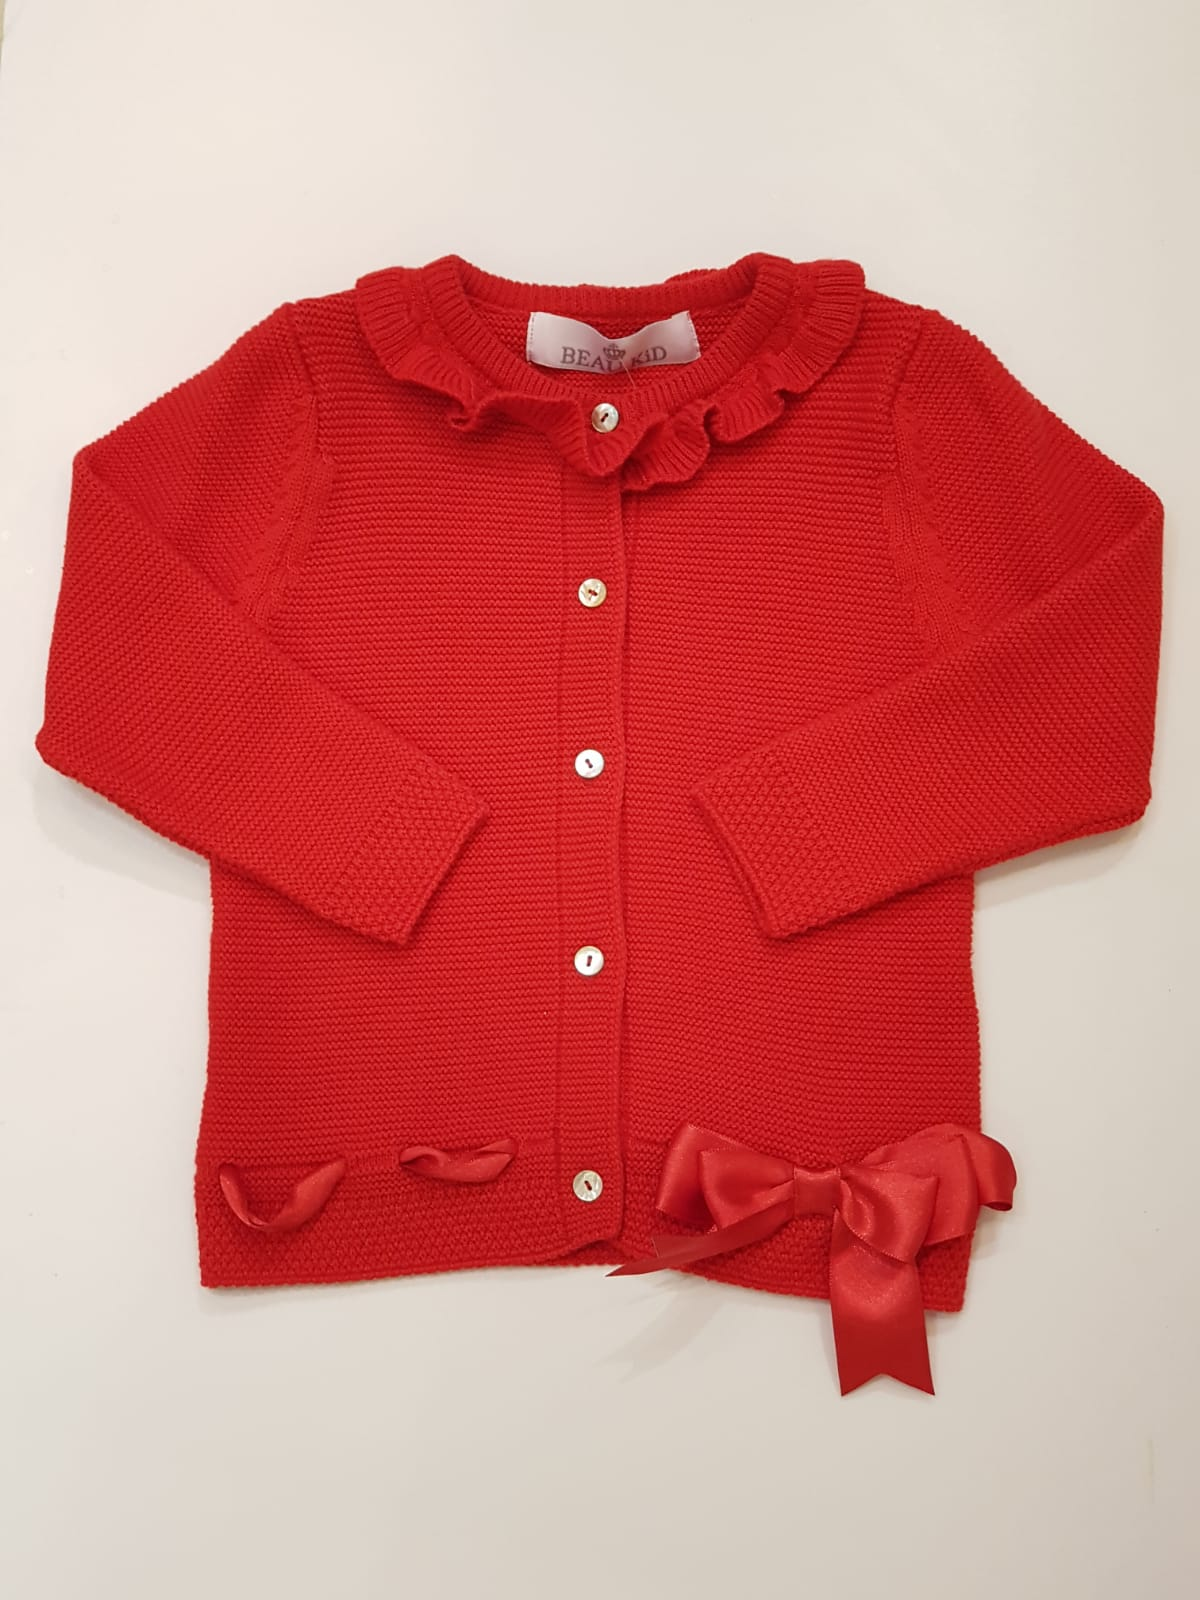 Beau Kid Red Bow Cardigan